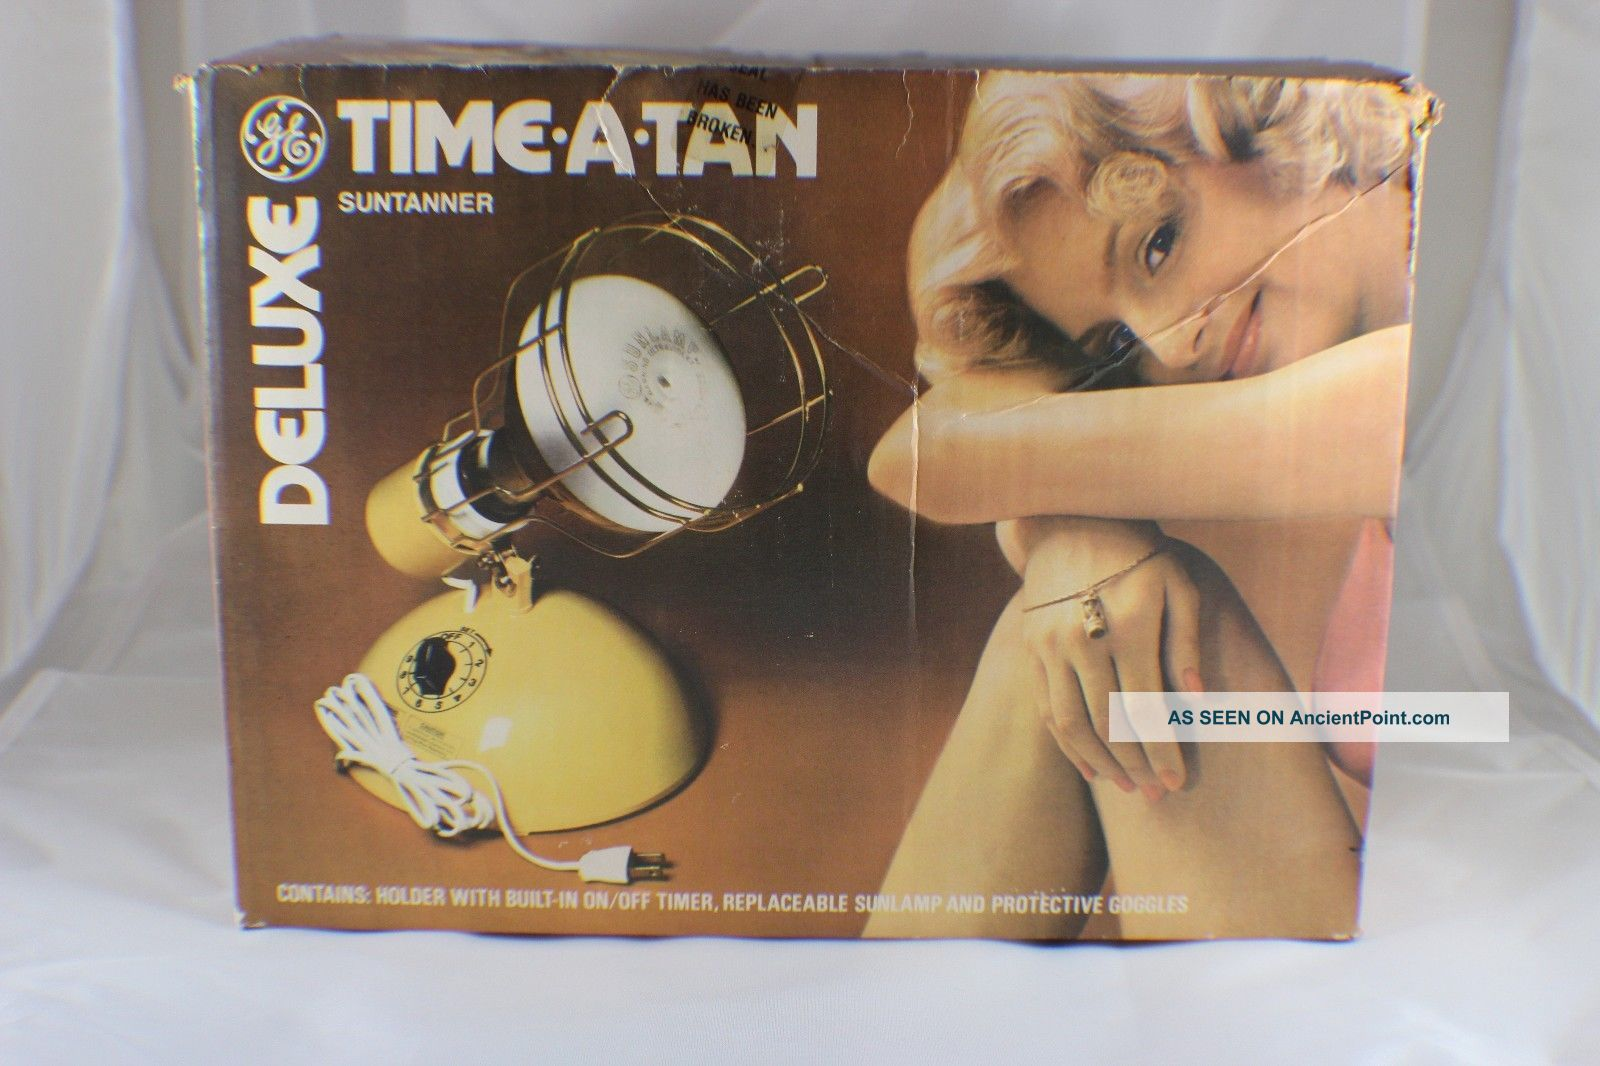 Vintage Ge Deluxe Time - A - Tan Sun Tanning Lamp W/ Bulb Great Other Antique Home & Hearth photo